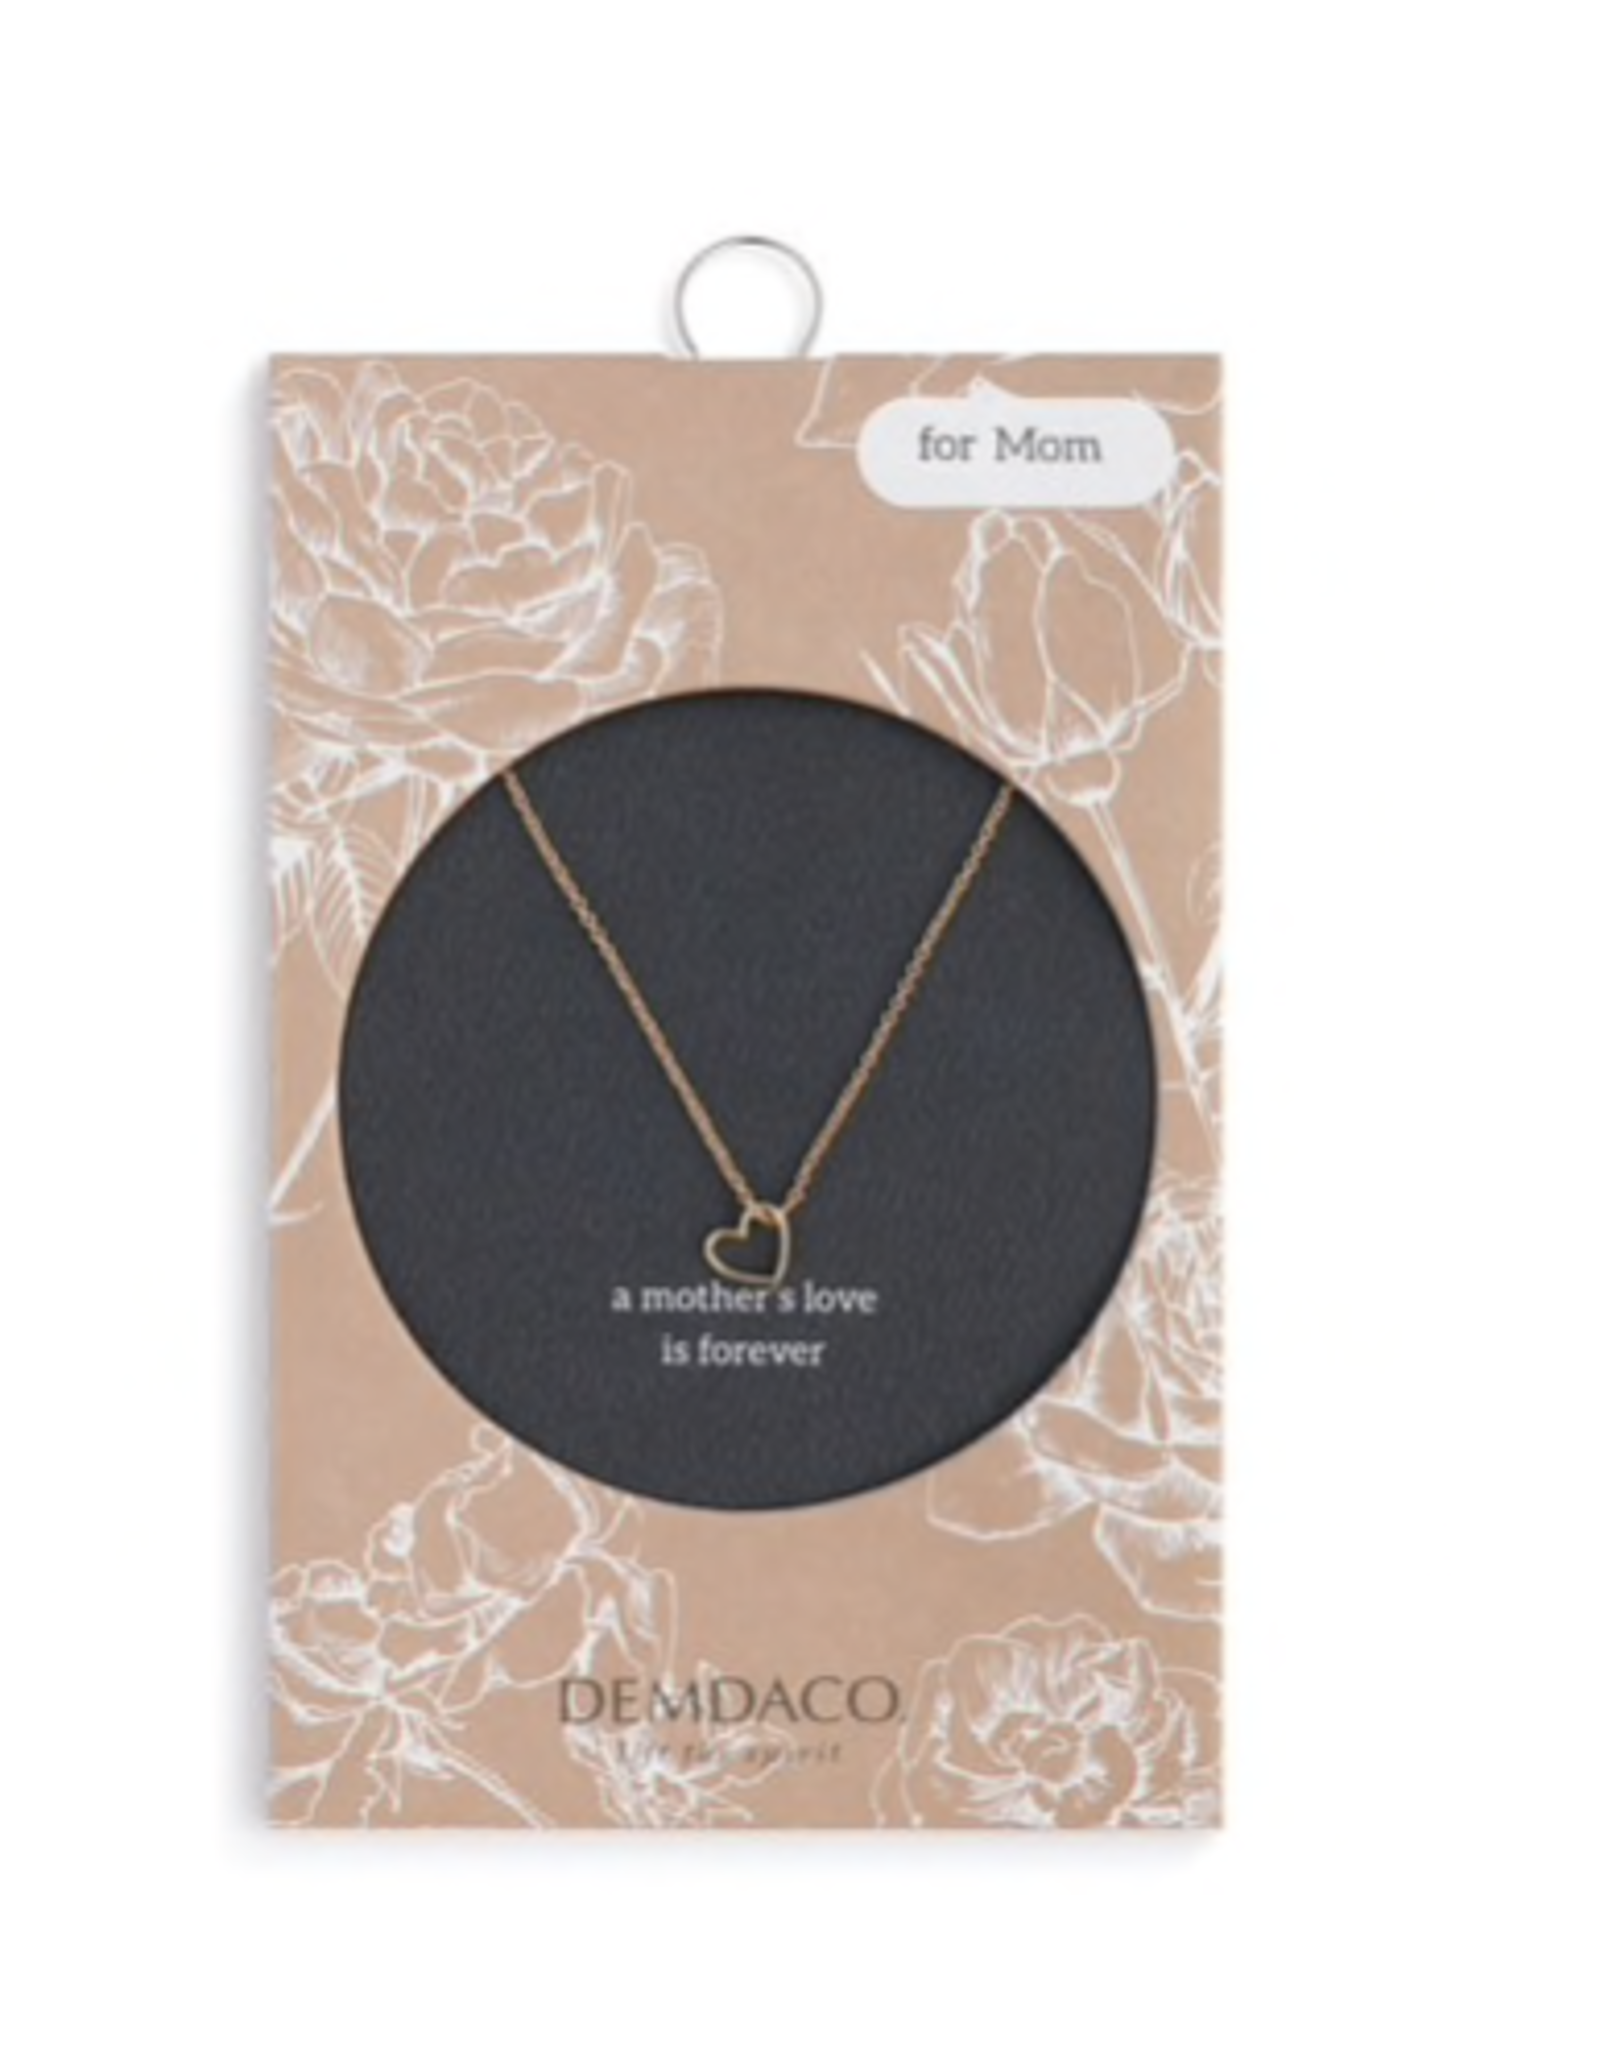 A mother's love is forever necklace with gold heart